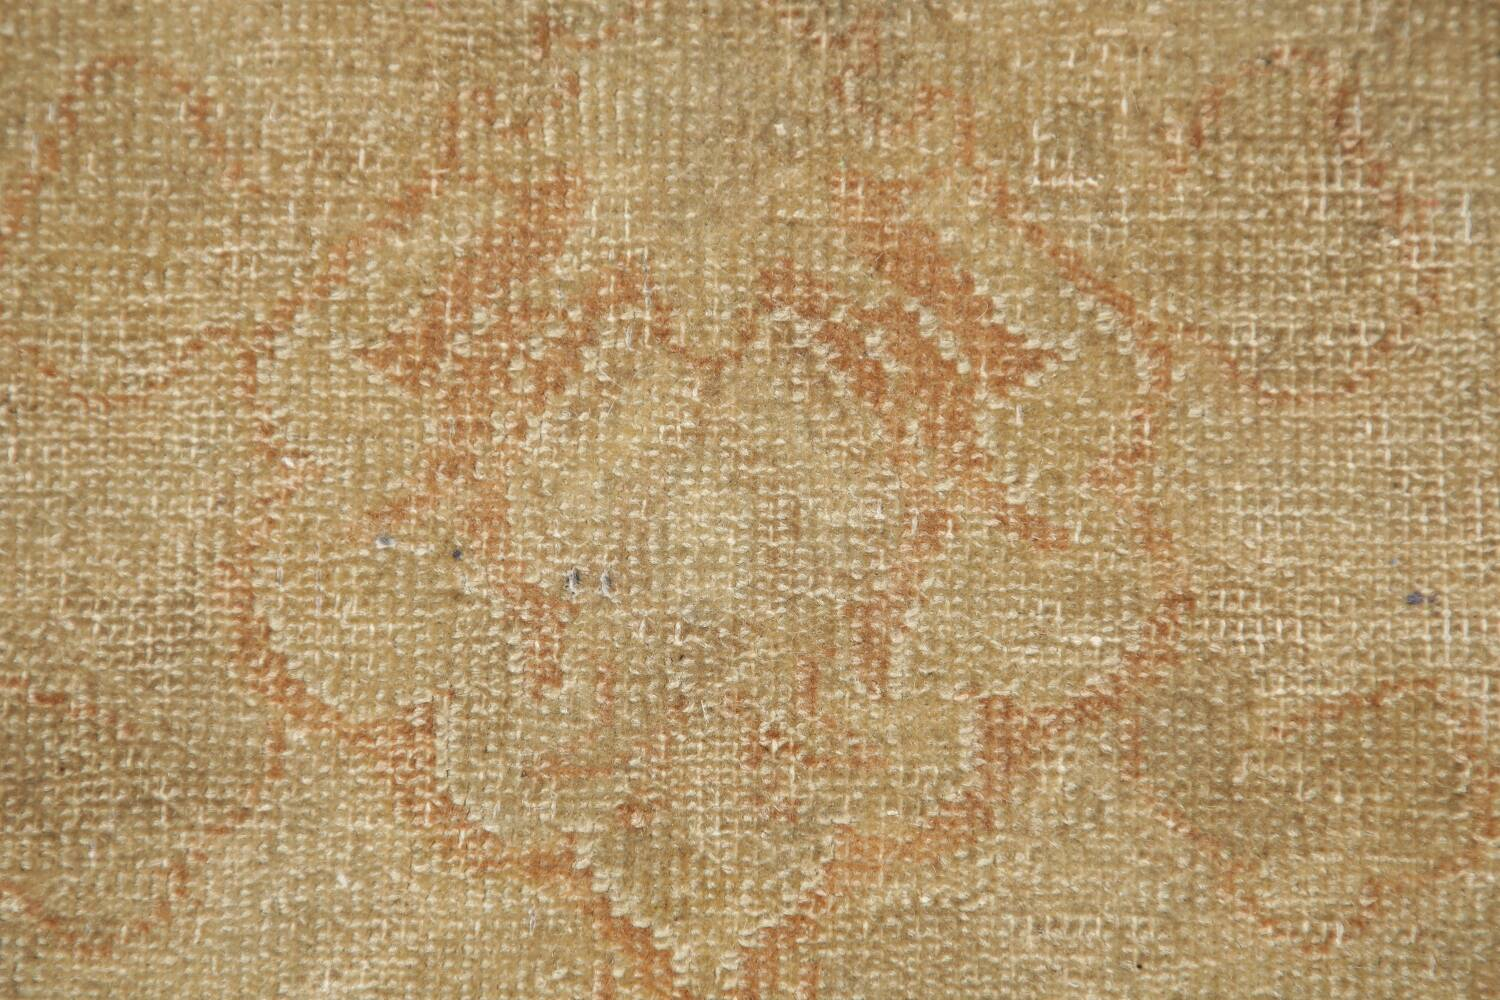 Antique Muted Floral Oushak Turkish Area Rug 6x8 image 9